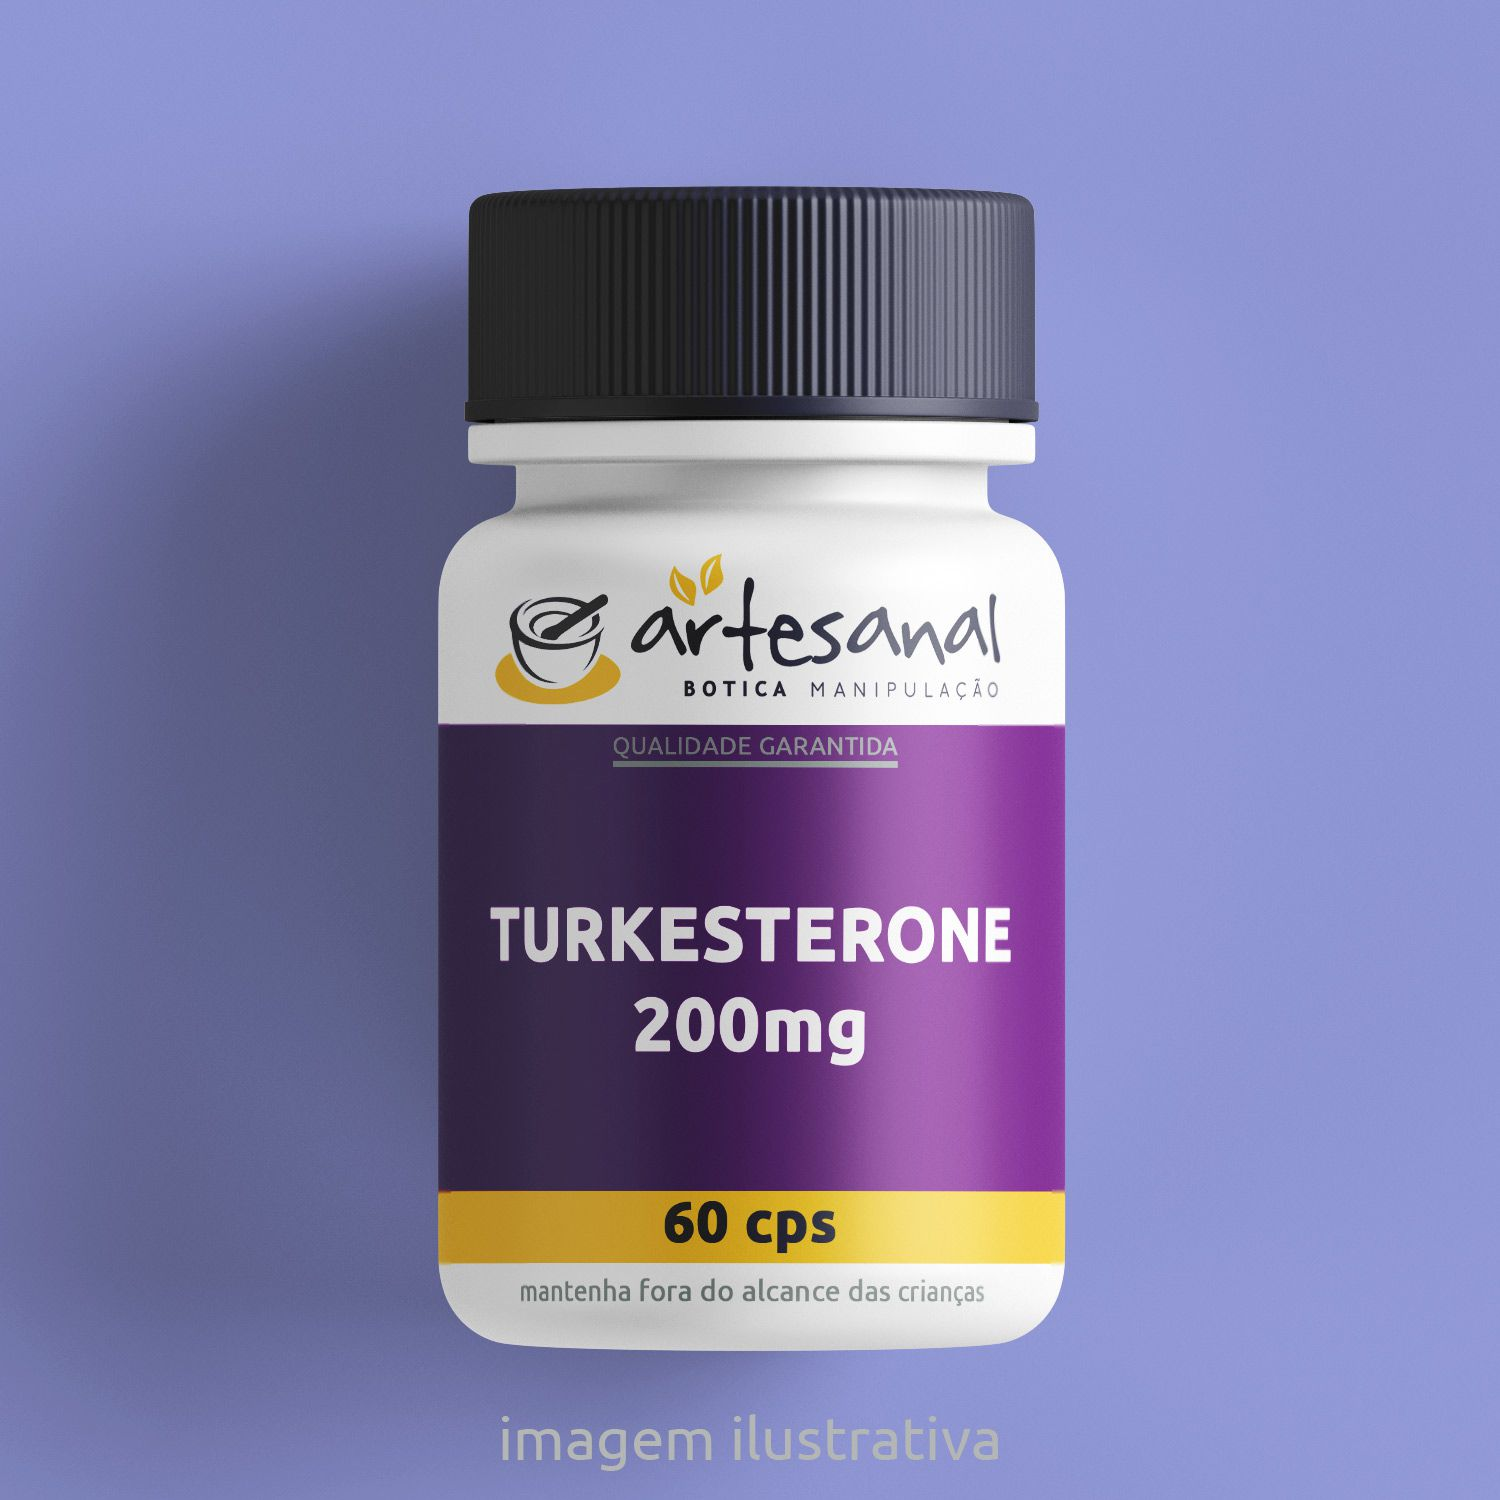 Turkesterone 200mg - 60 Cps